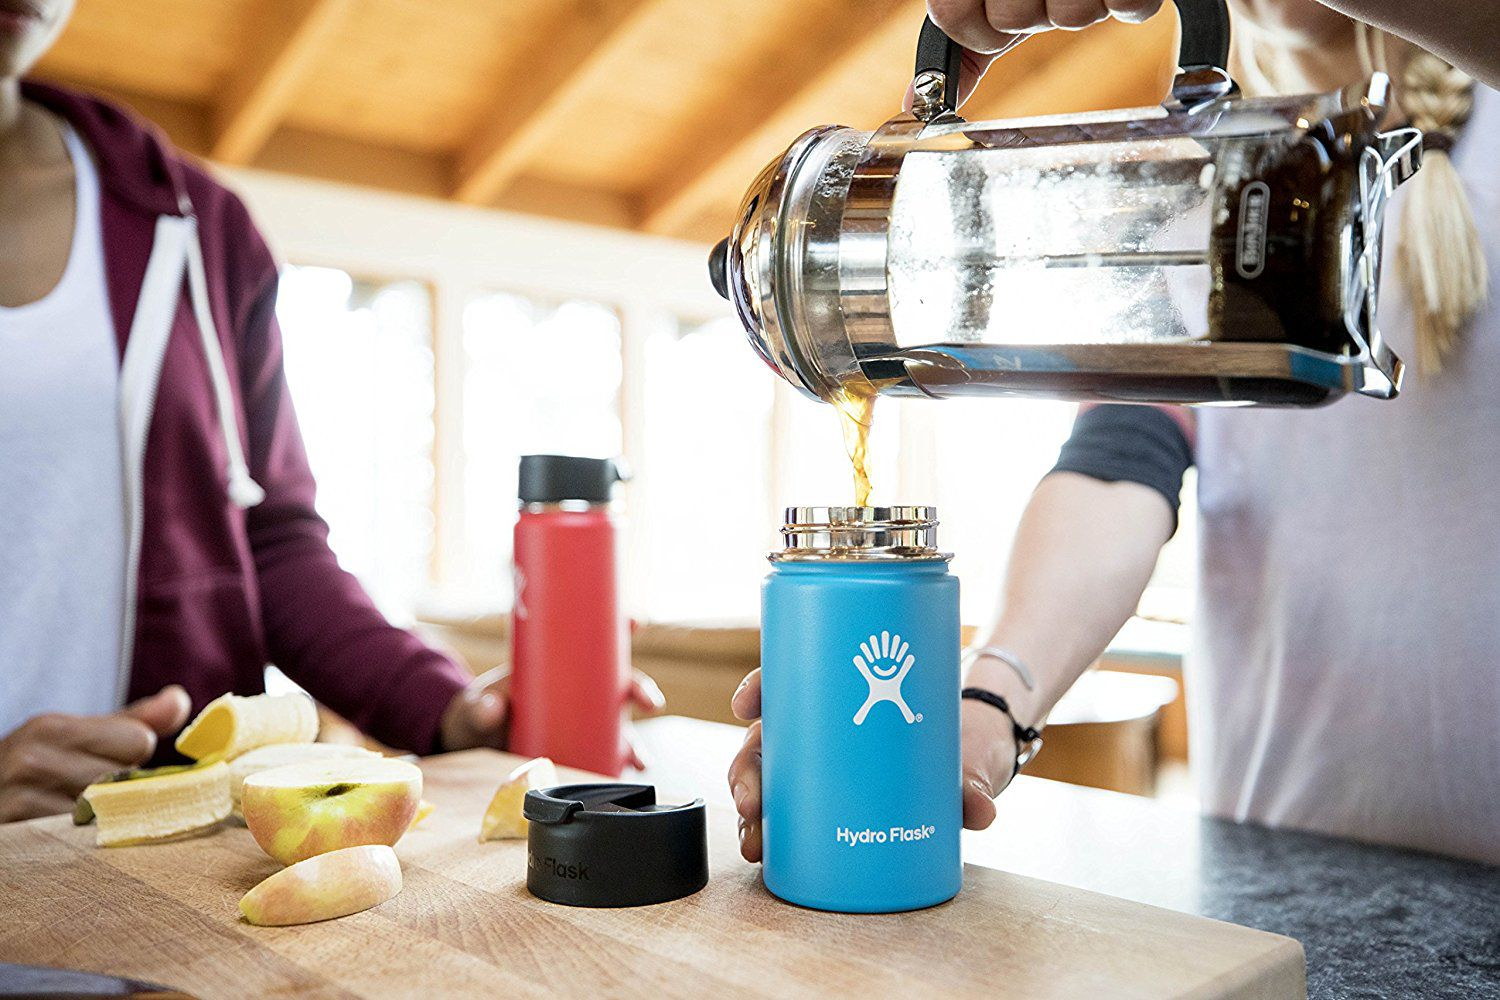 bcf5a1445a3 The 10 Best Travel Coffee Mugs of 2019